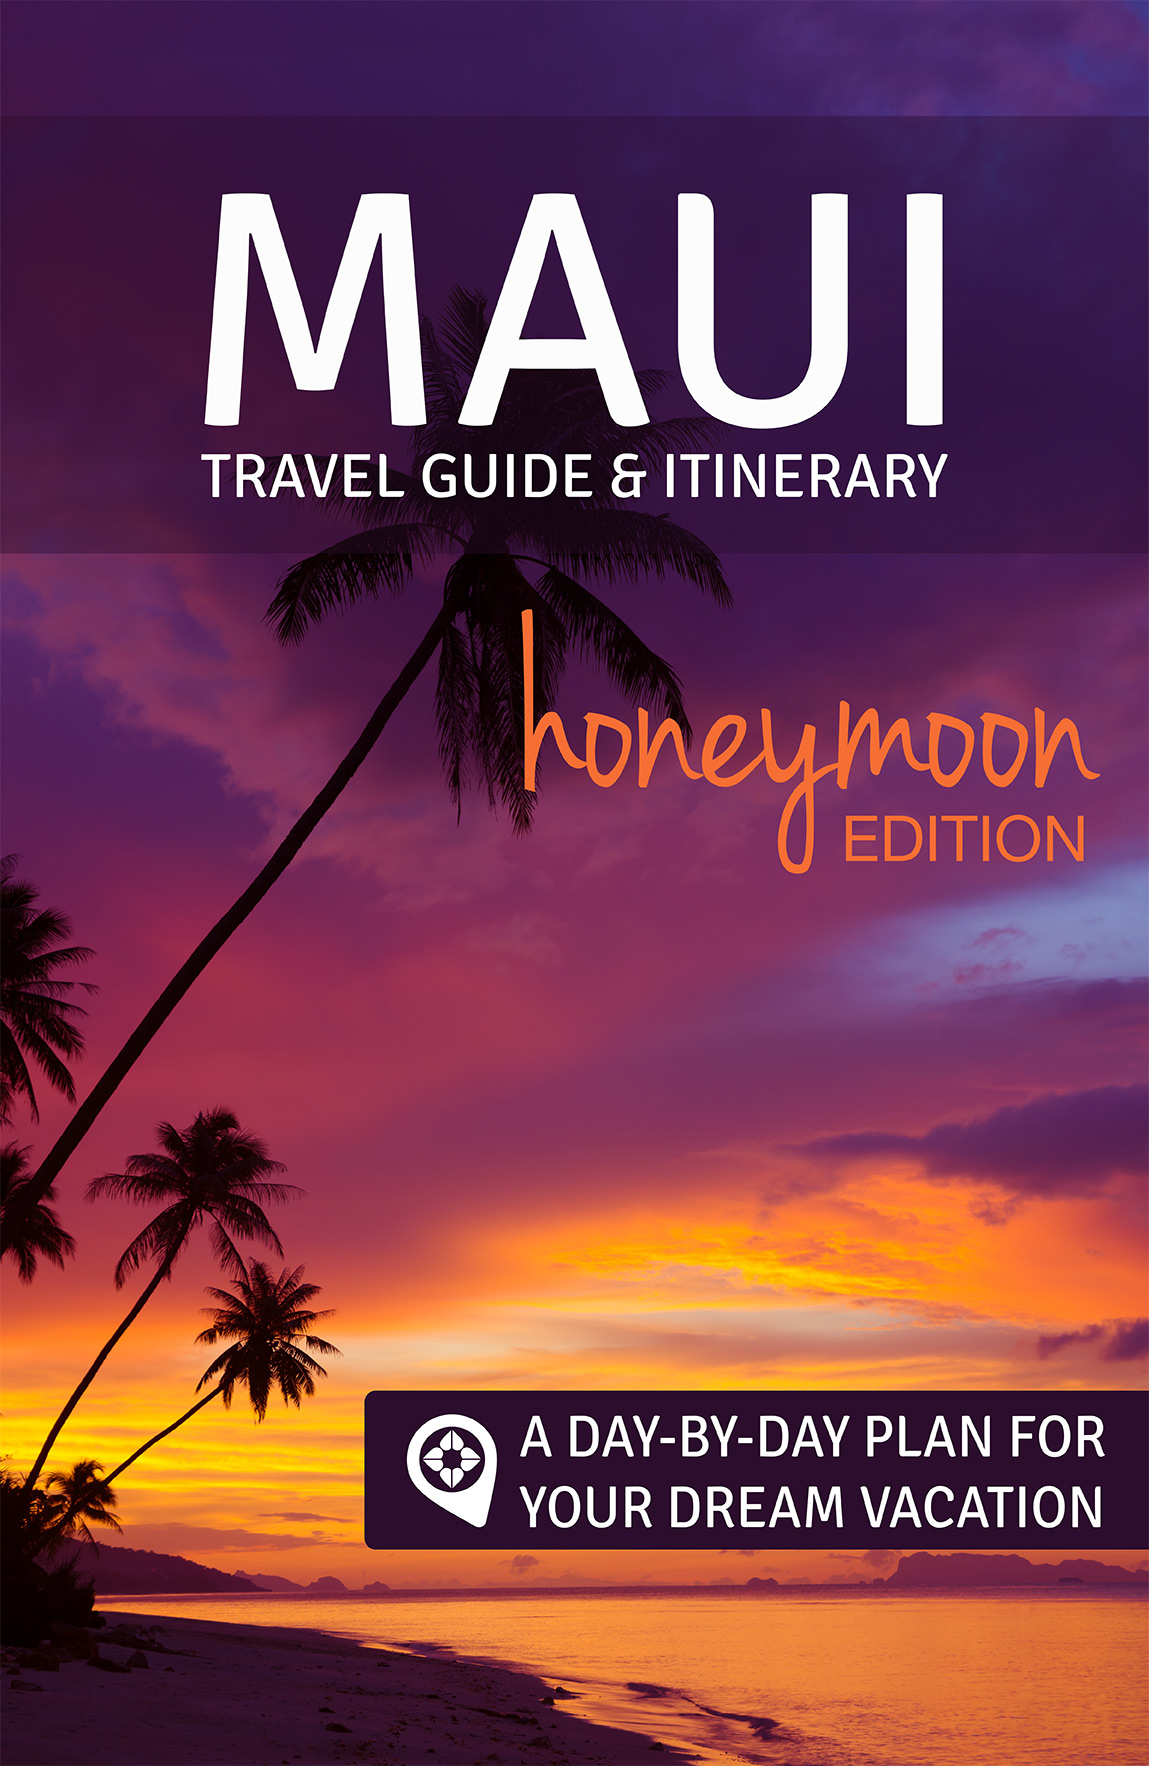 Maui Travel Guide  Itinerary Honeymoon Edition eBook  Rose  Gully Travel Guides